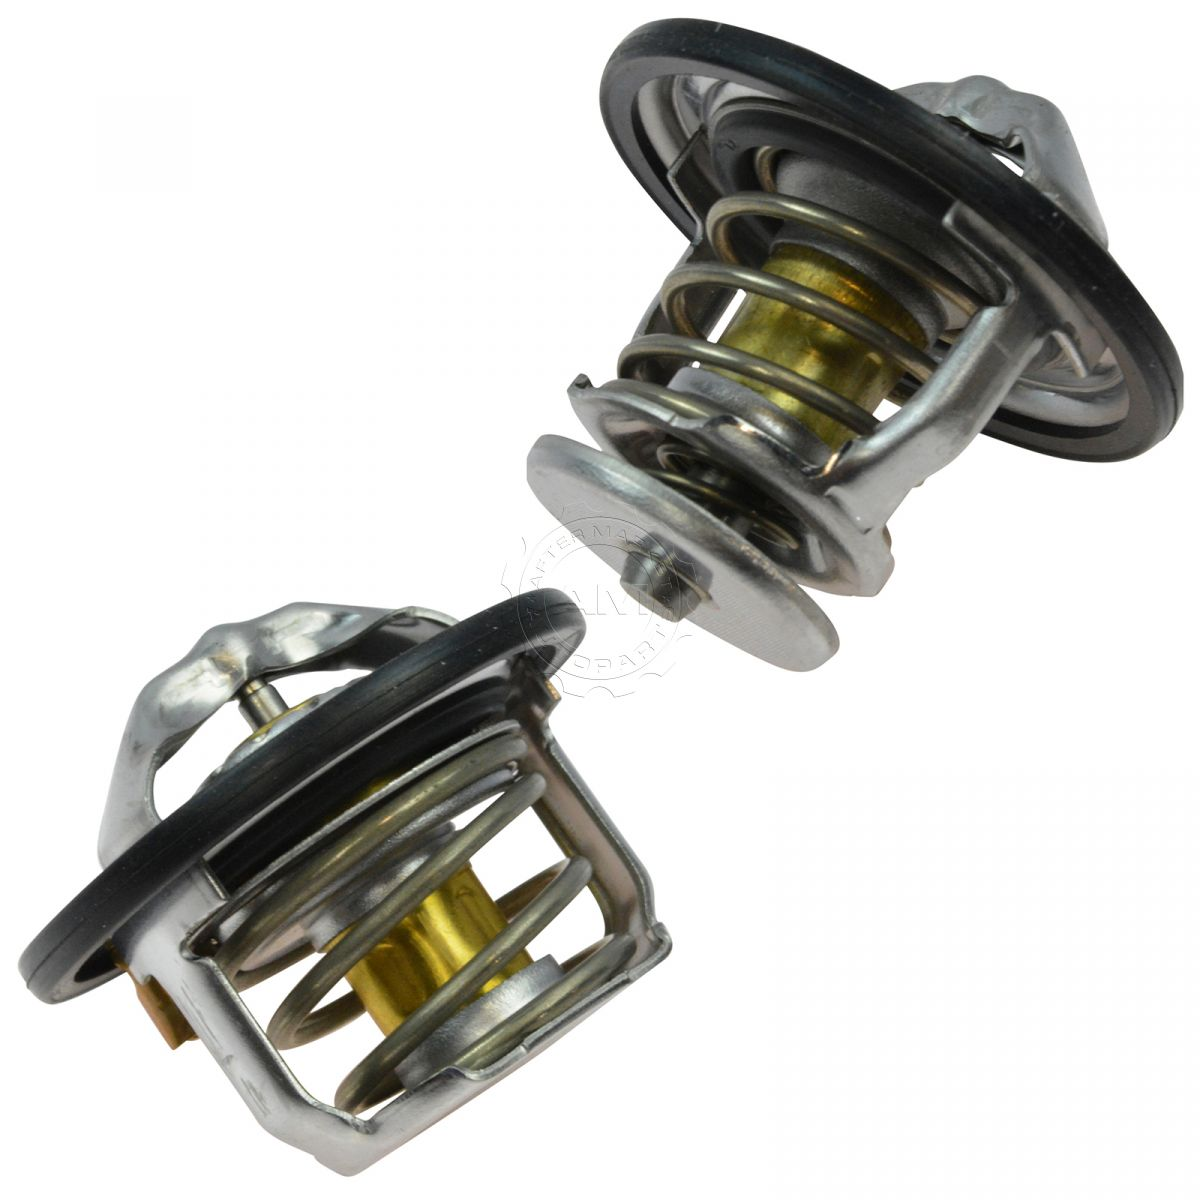 AC Delco 185 & 180 Degree Thermostat Front & Rear Kit Pair